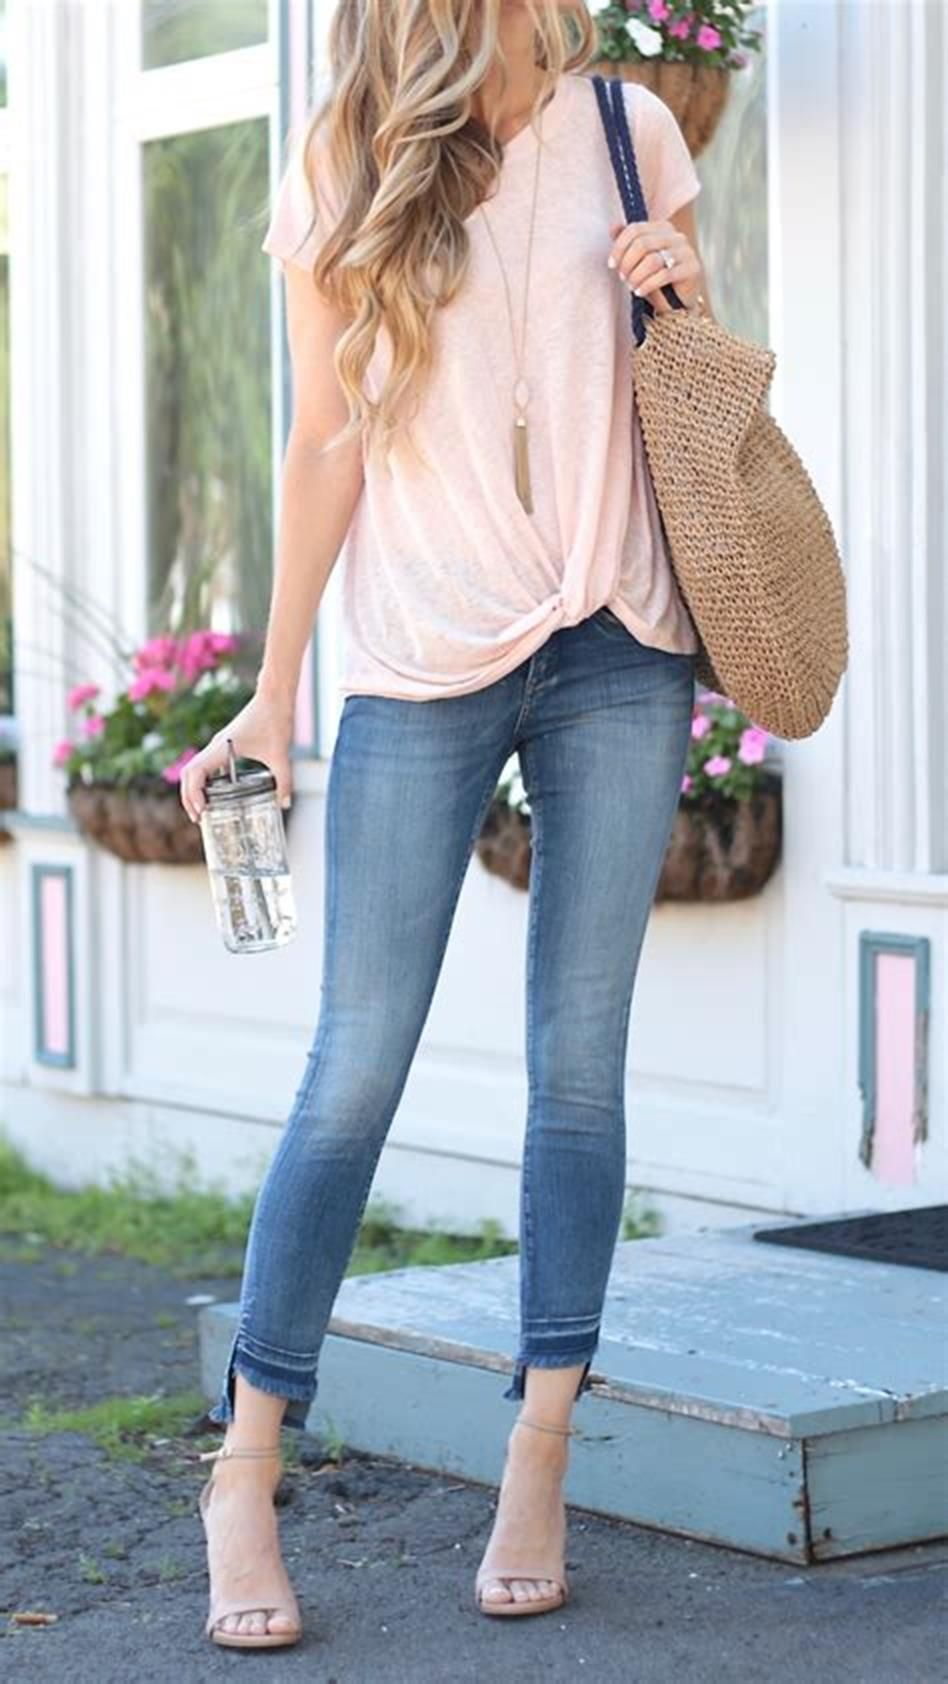 29 Stylish and Cute Casual Spring Outfits Ideas For Women